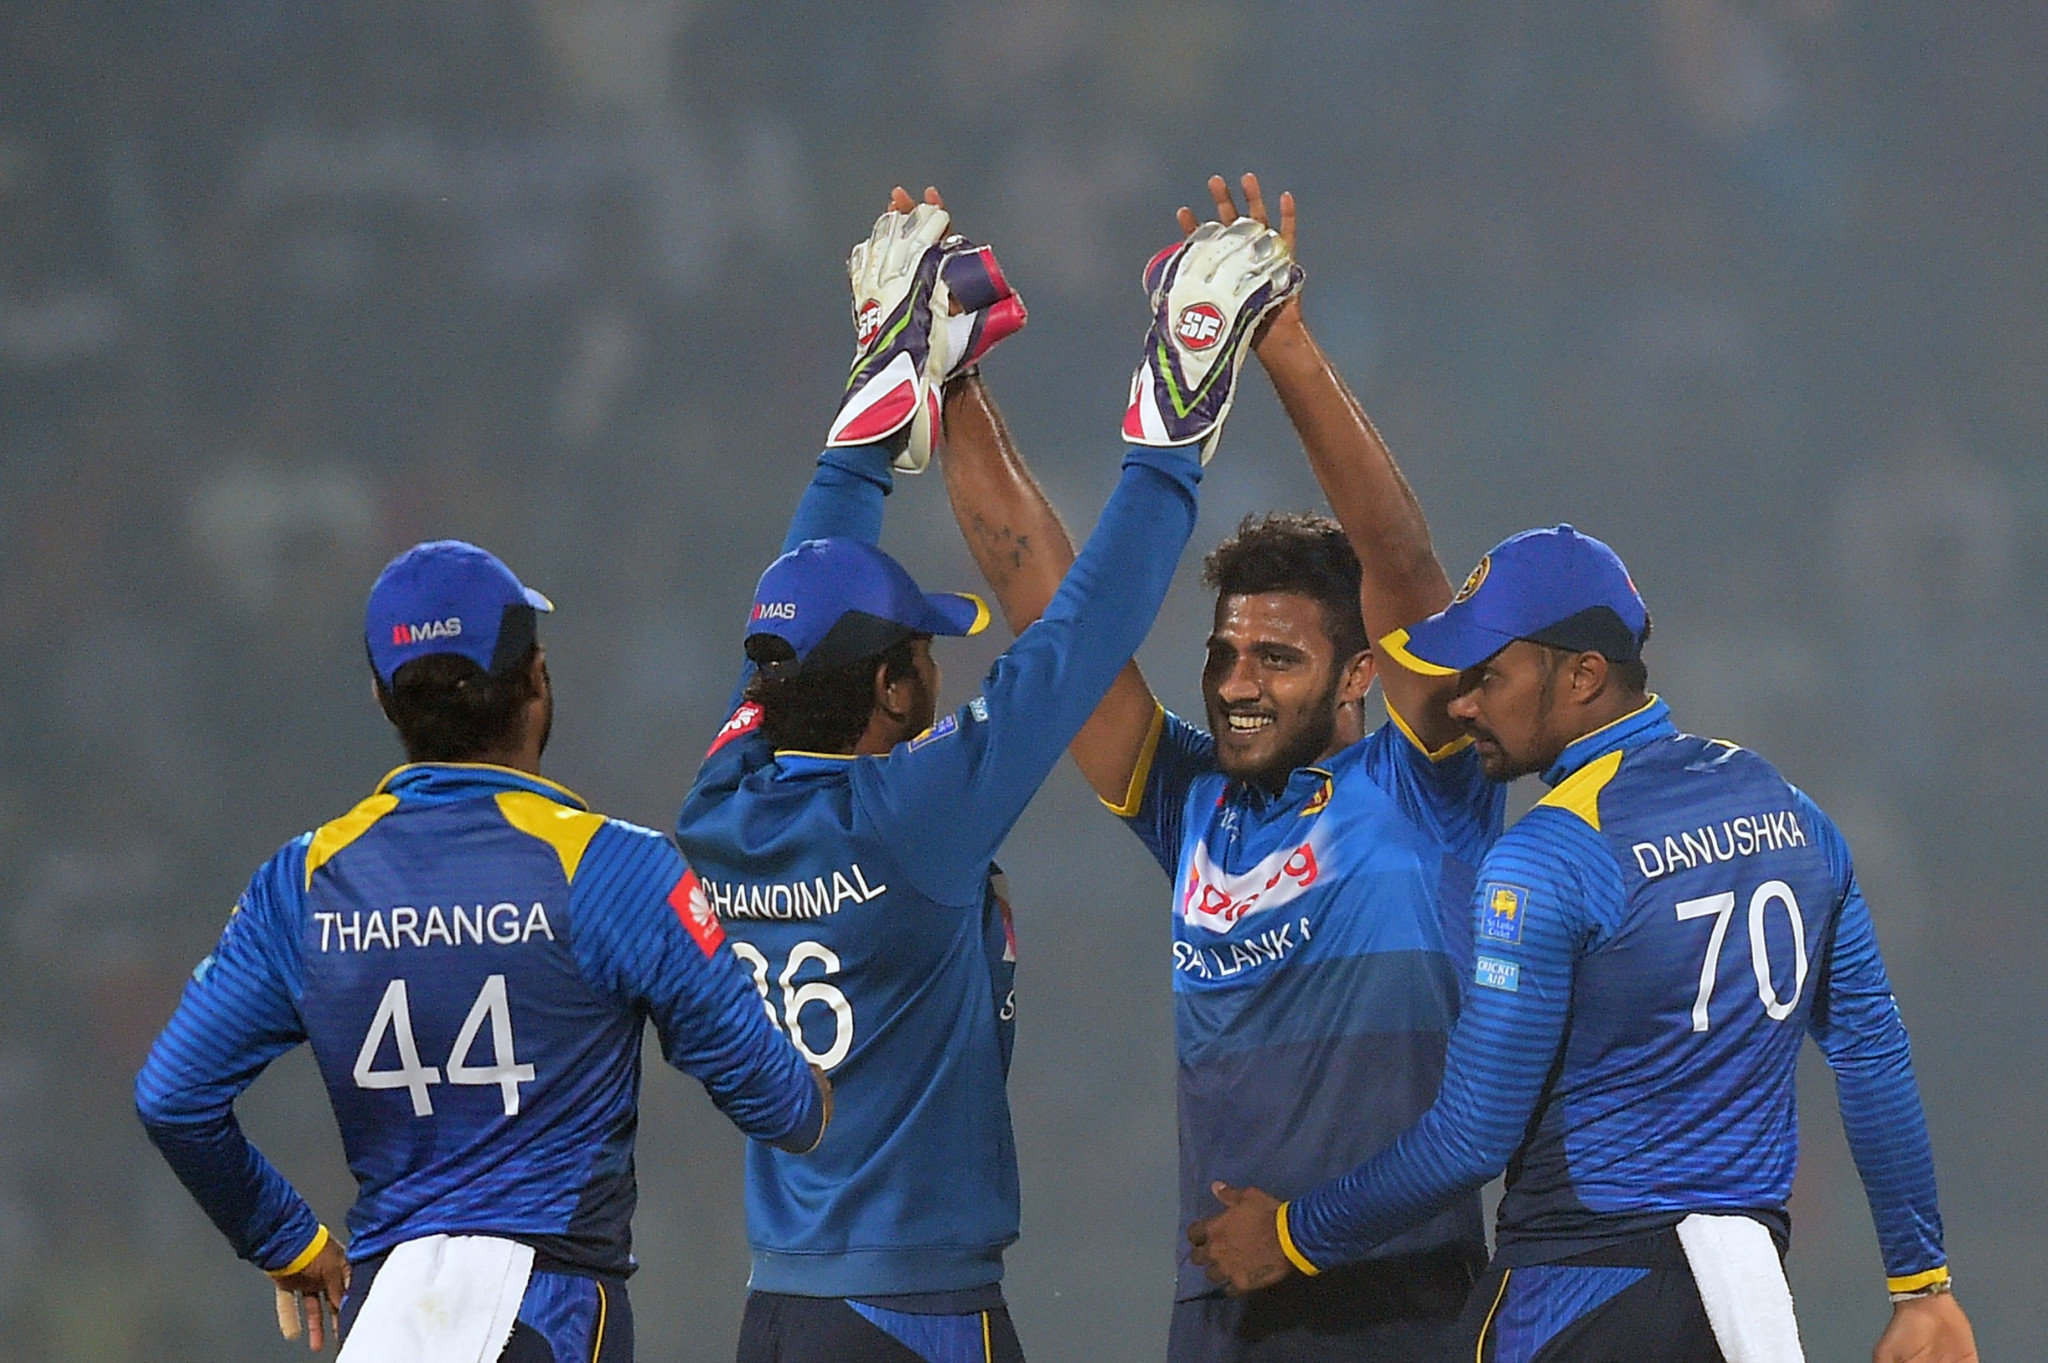 Shehan Madushanka has played three international matches for Sri Lanka ©Getty Images